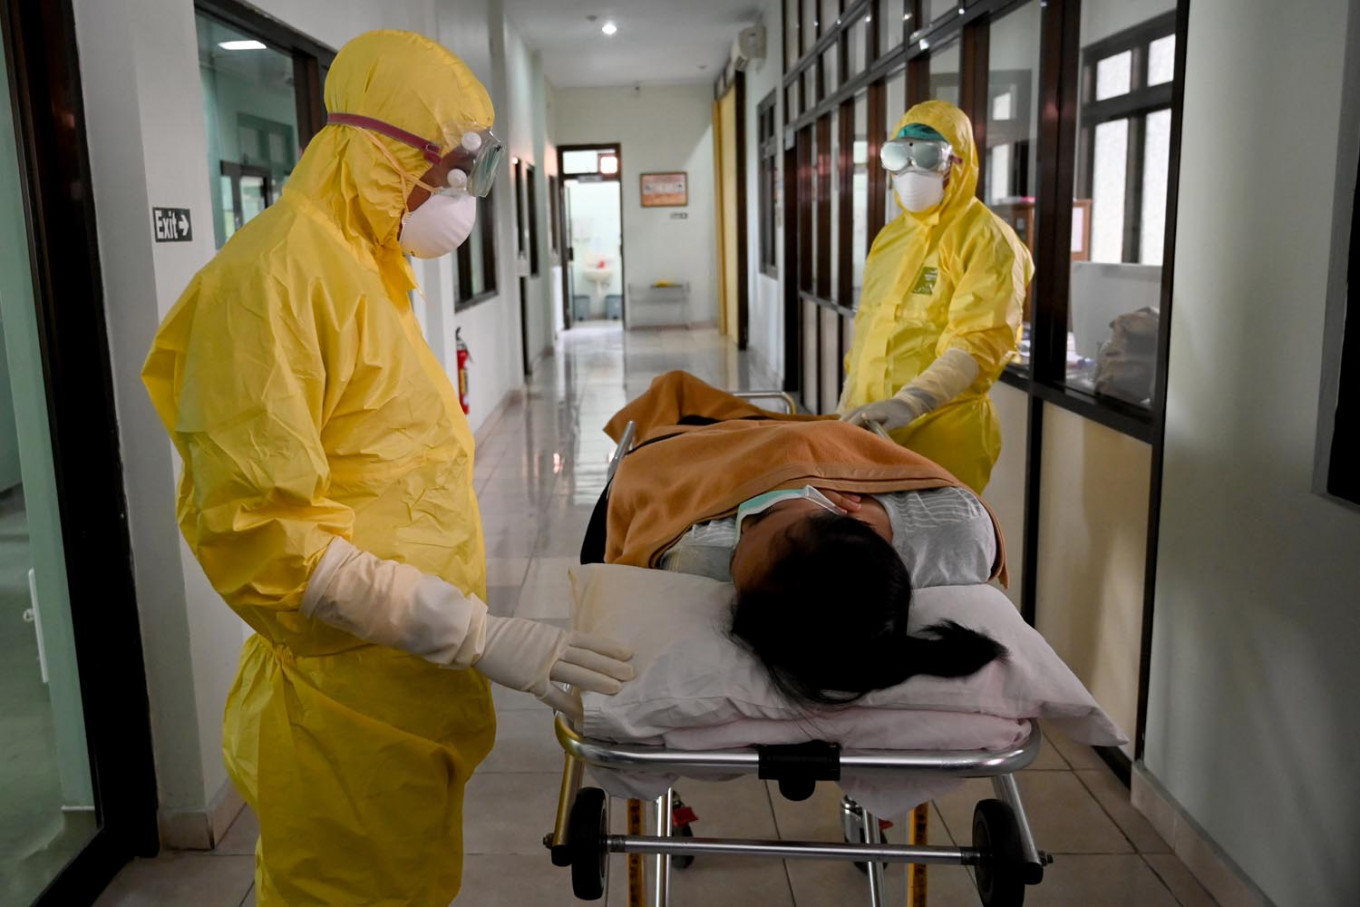 Indonesia's health system on the brink as coronavirus surge looms